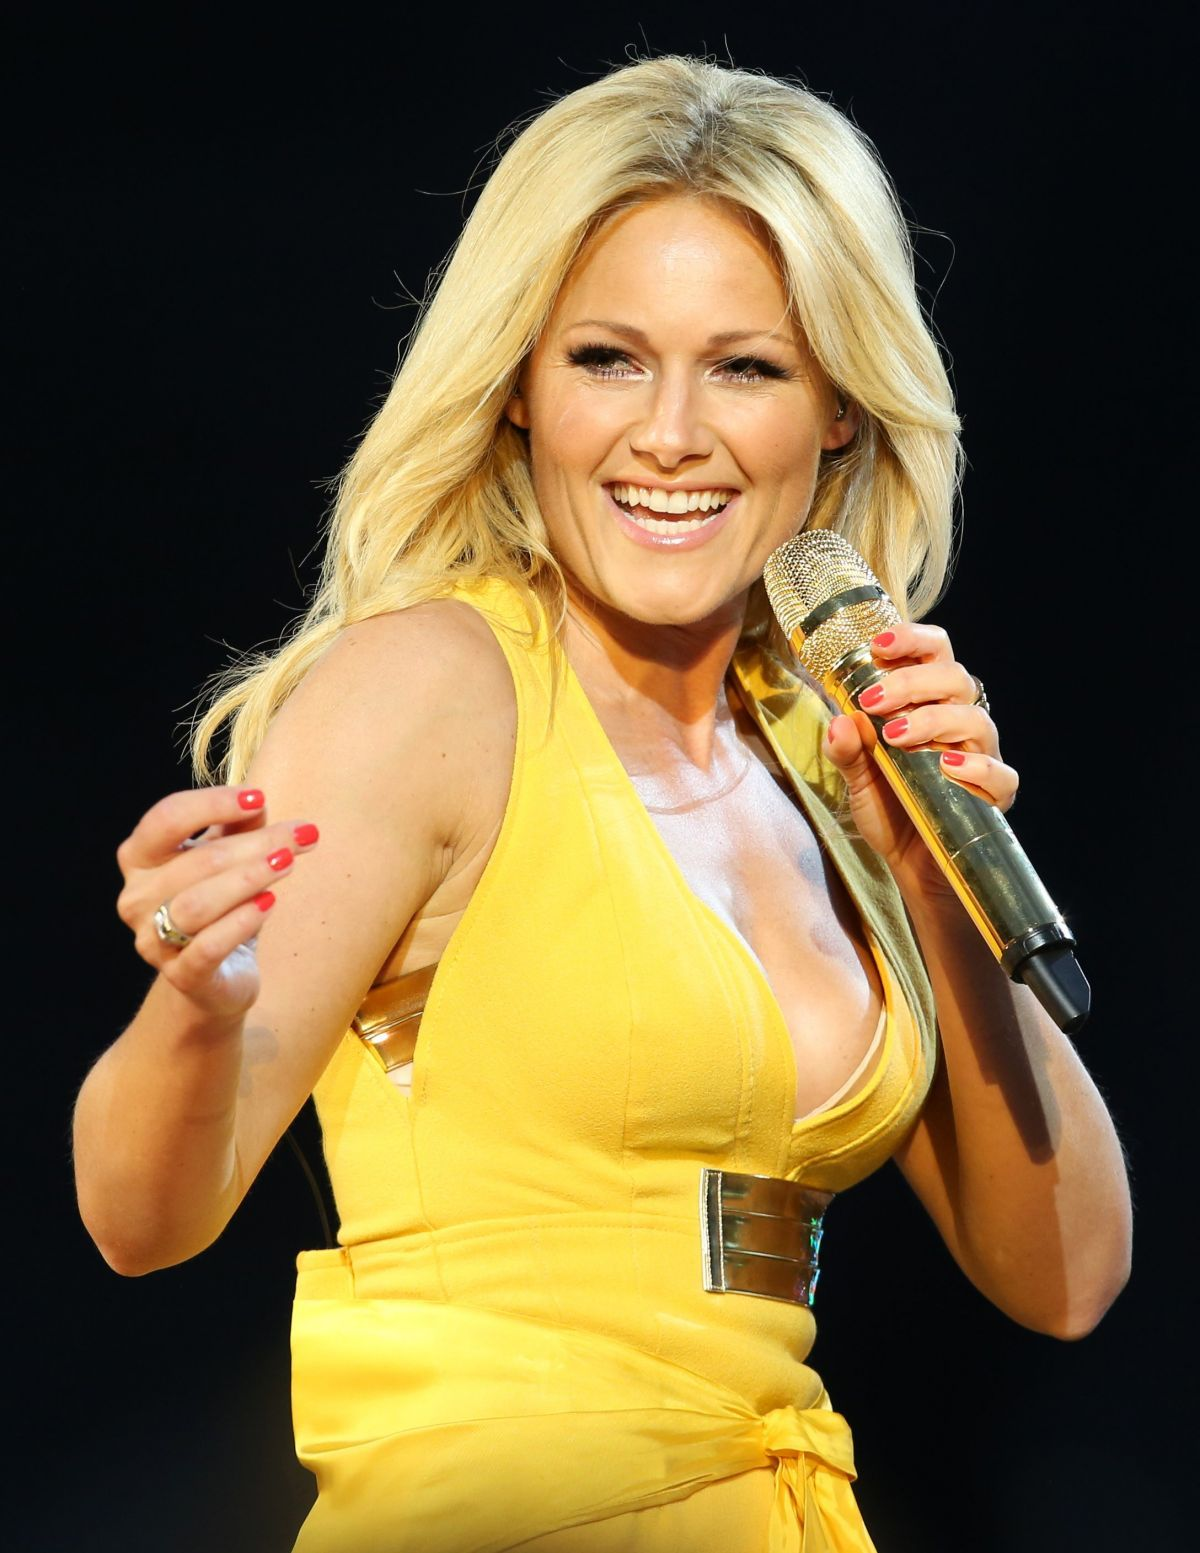 Helene Fischer performing in a stage wearing a yellow dress